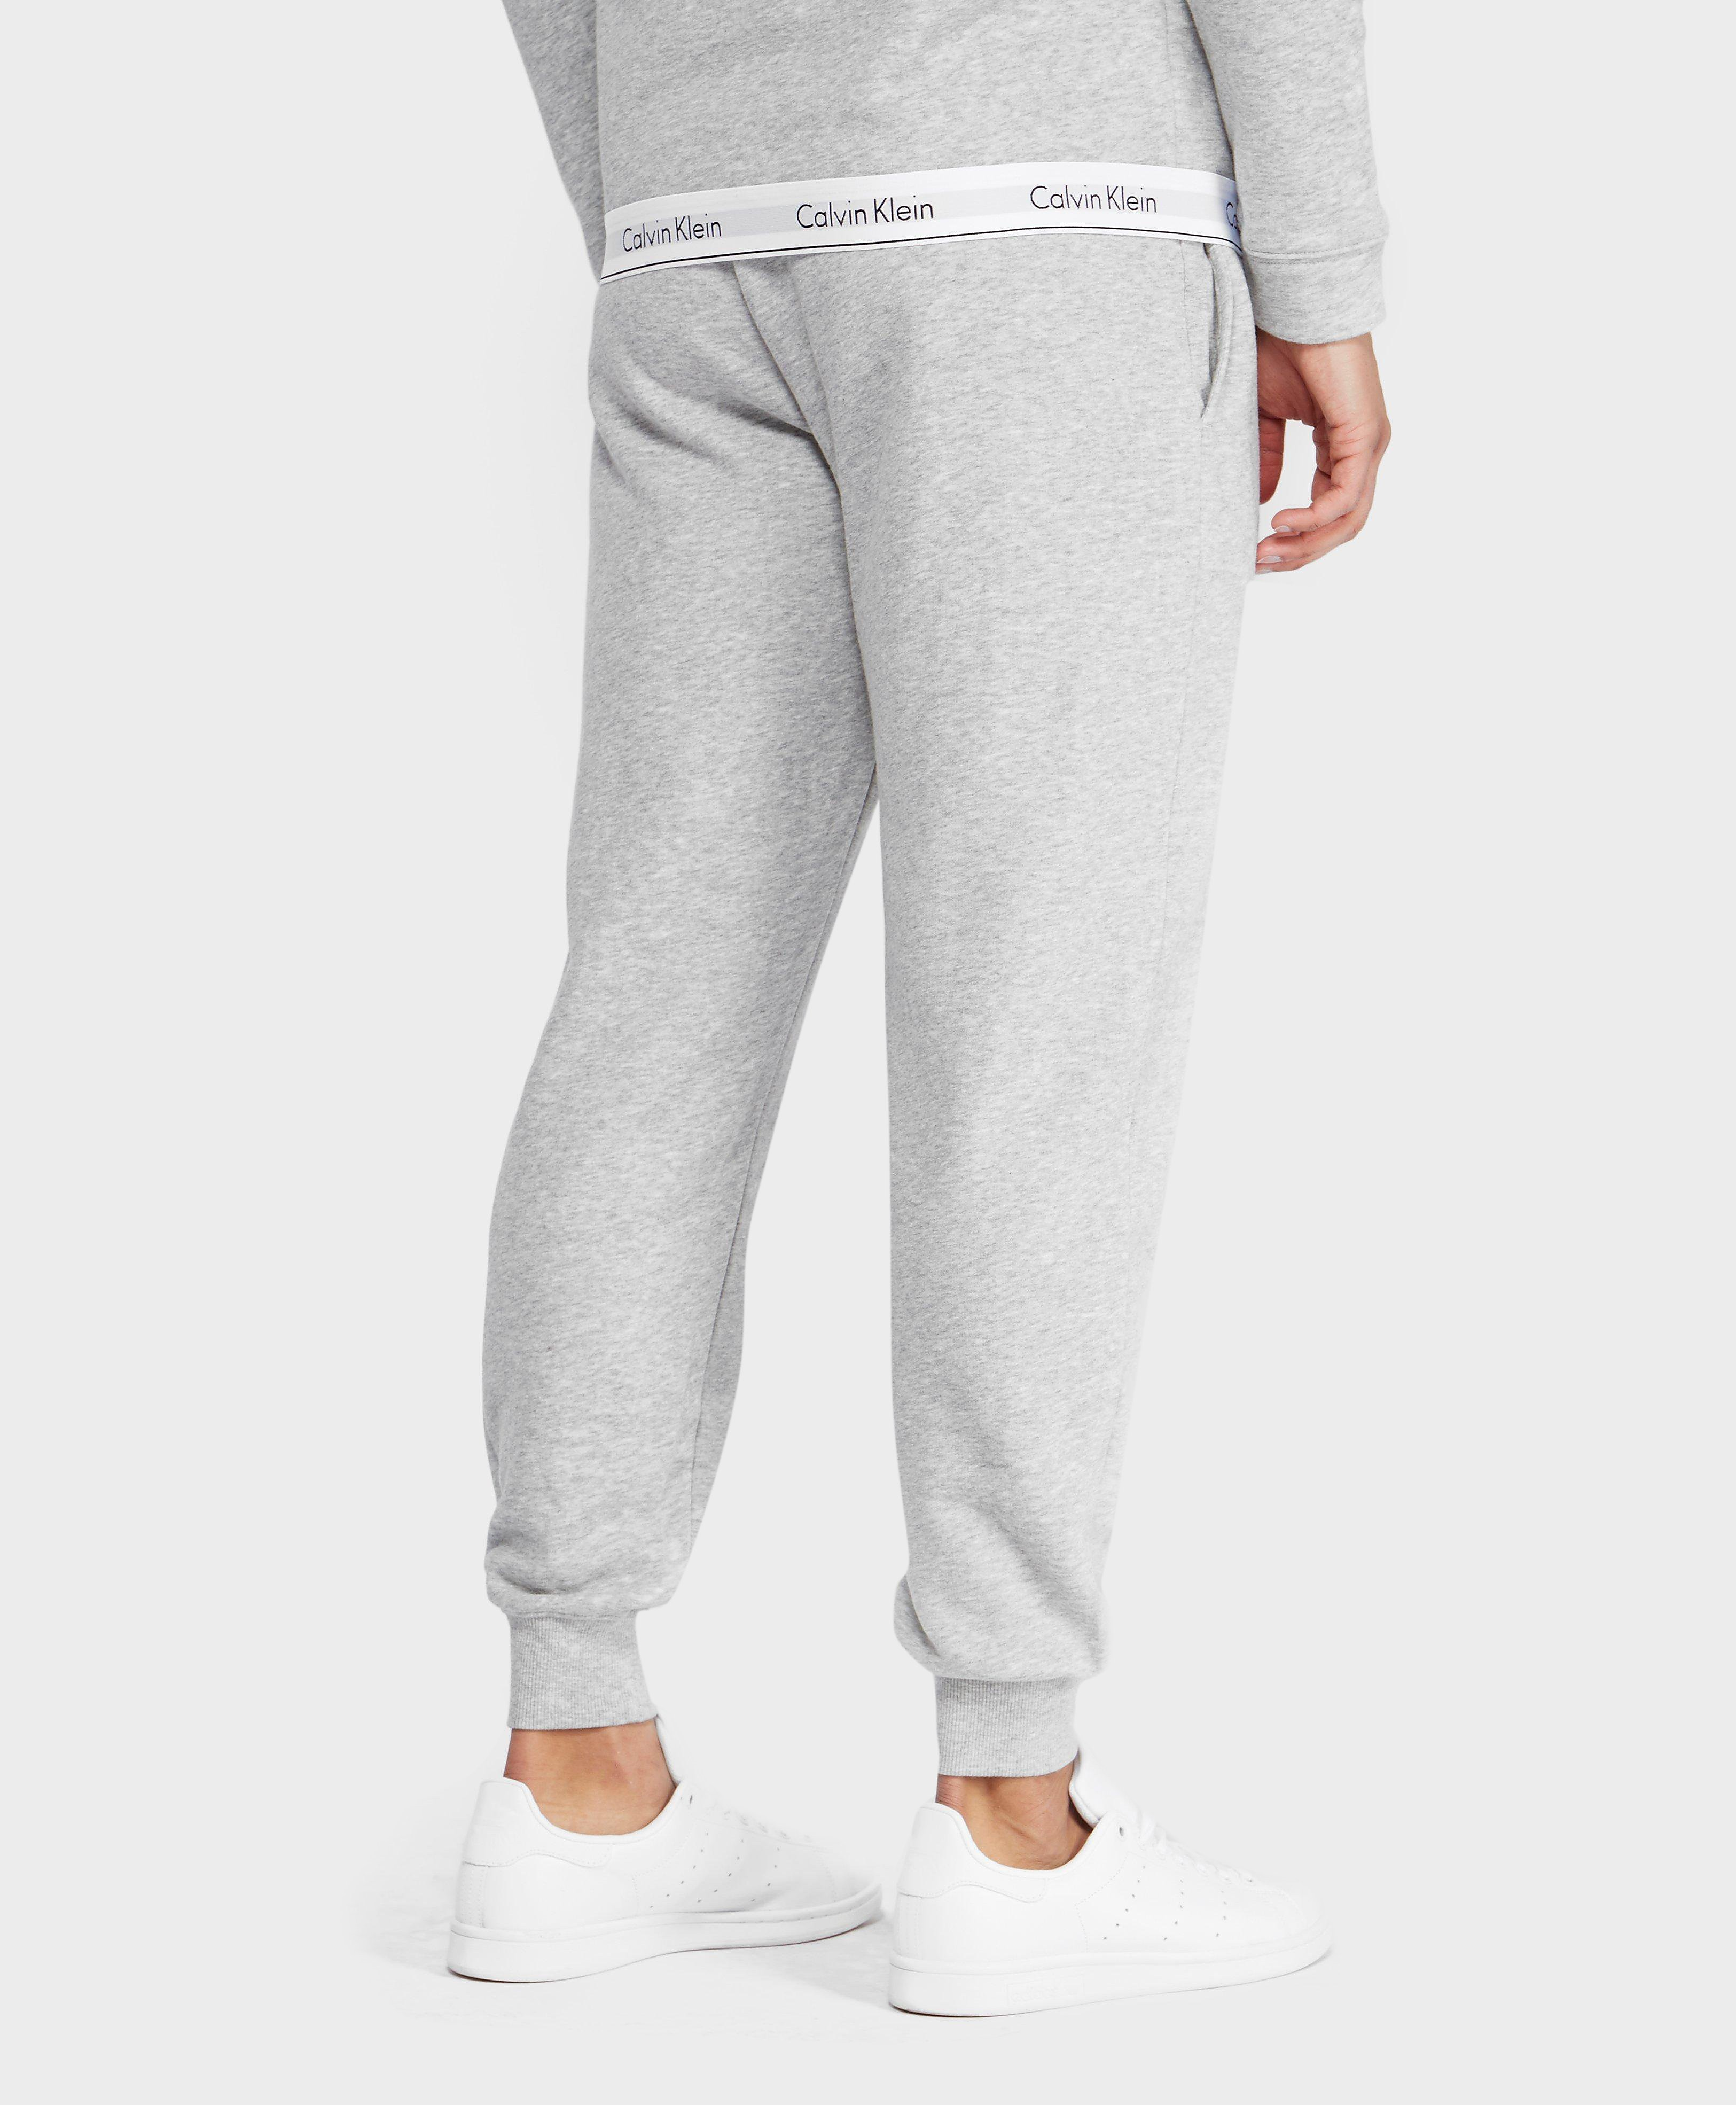 Calvin Klein Tape Track Pants